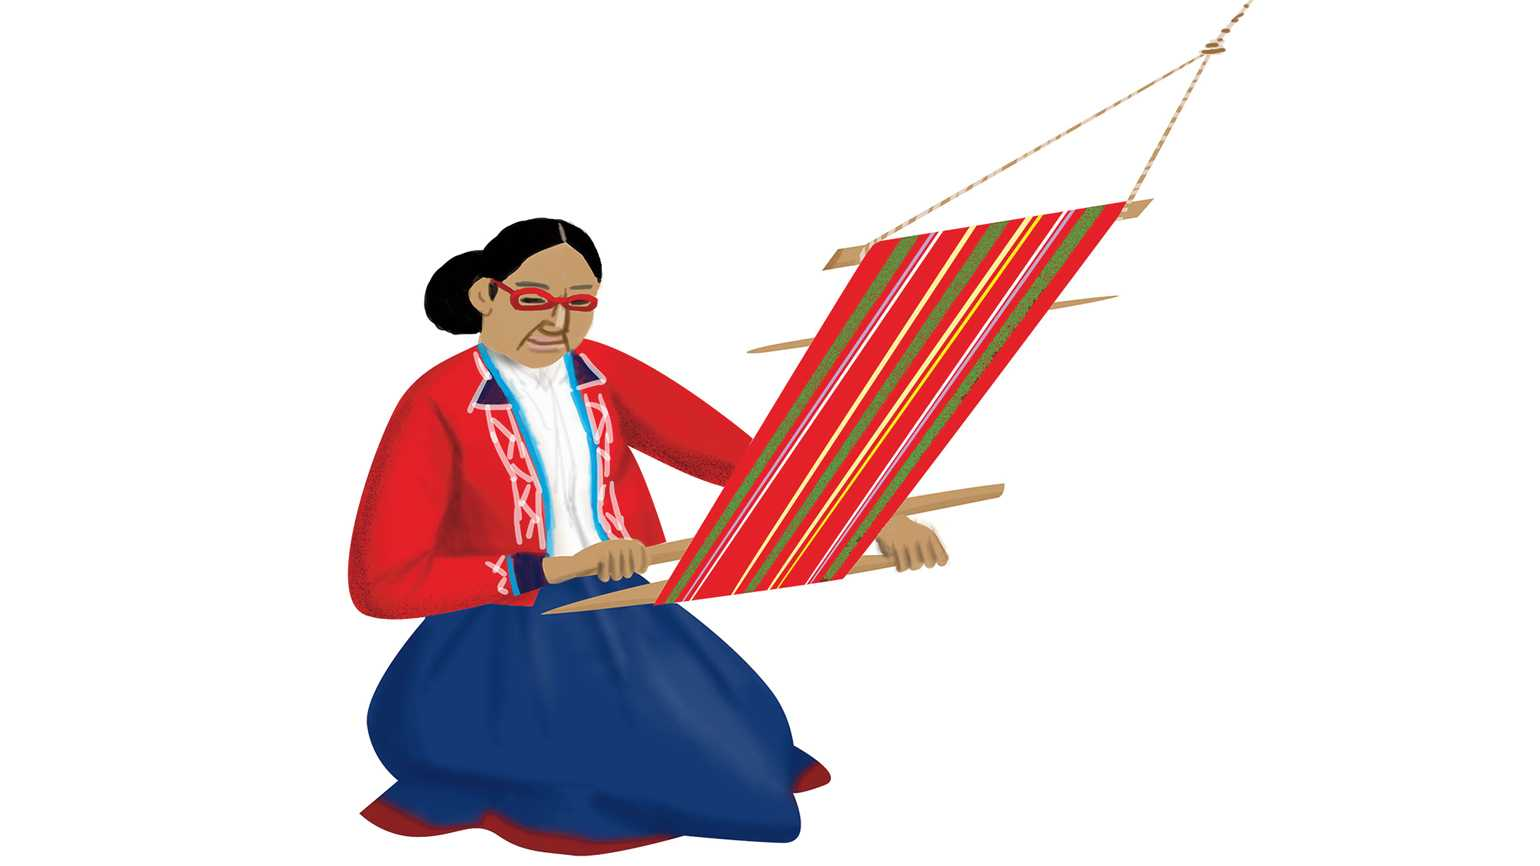 A Peruvian woman wearing glasses weaving with colorful yarn.